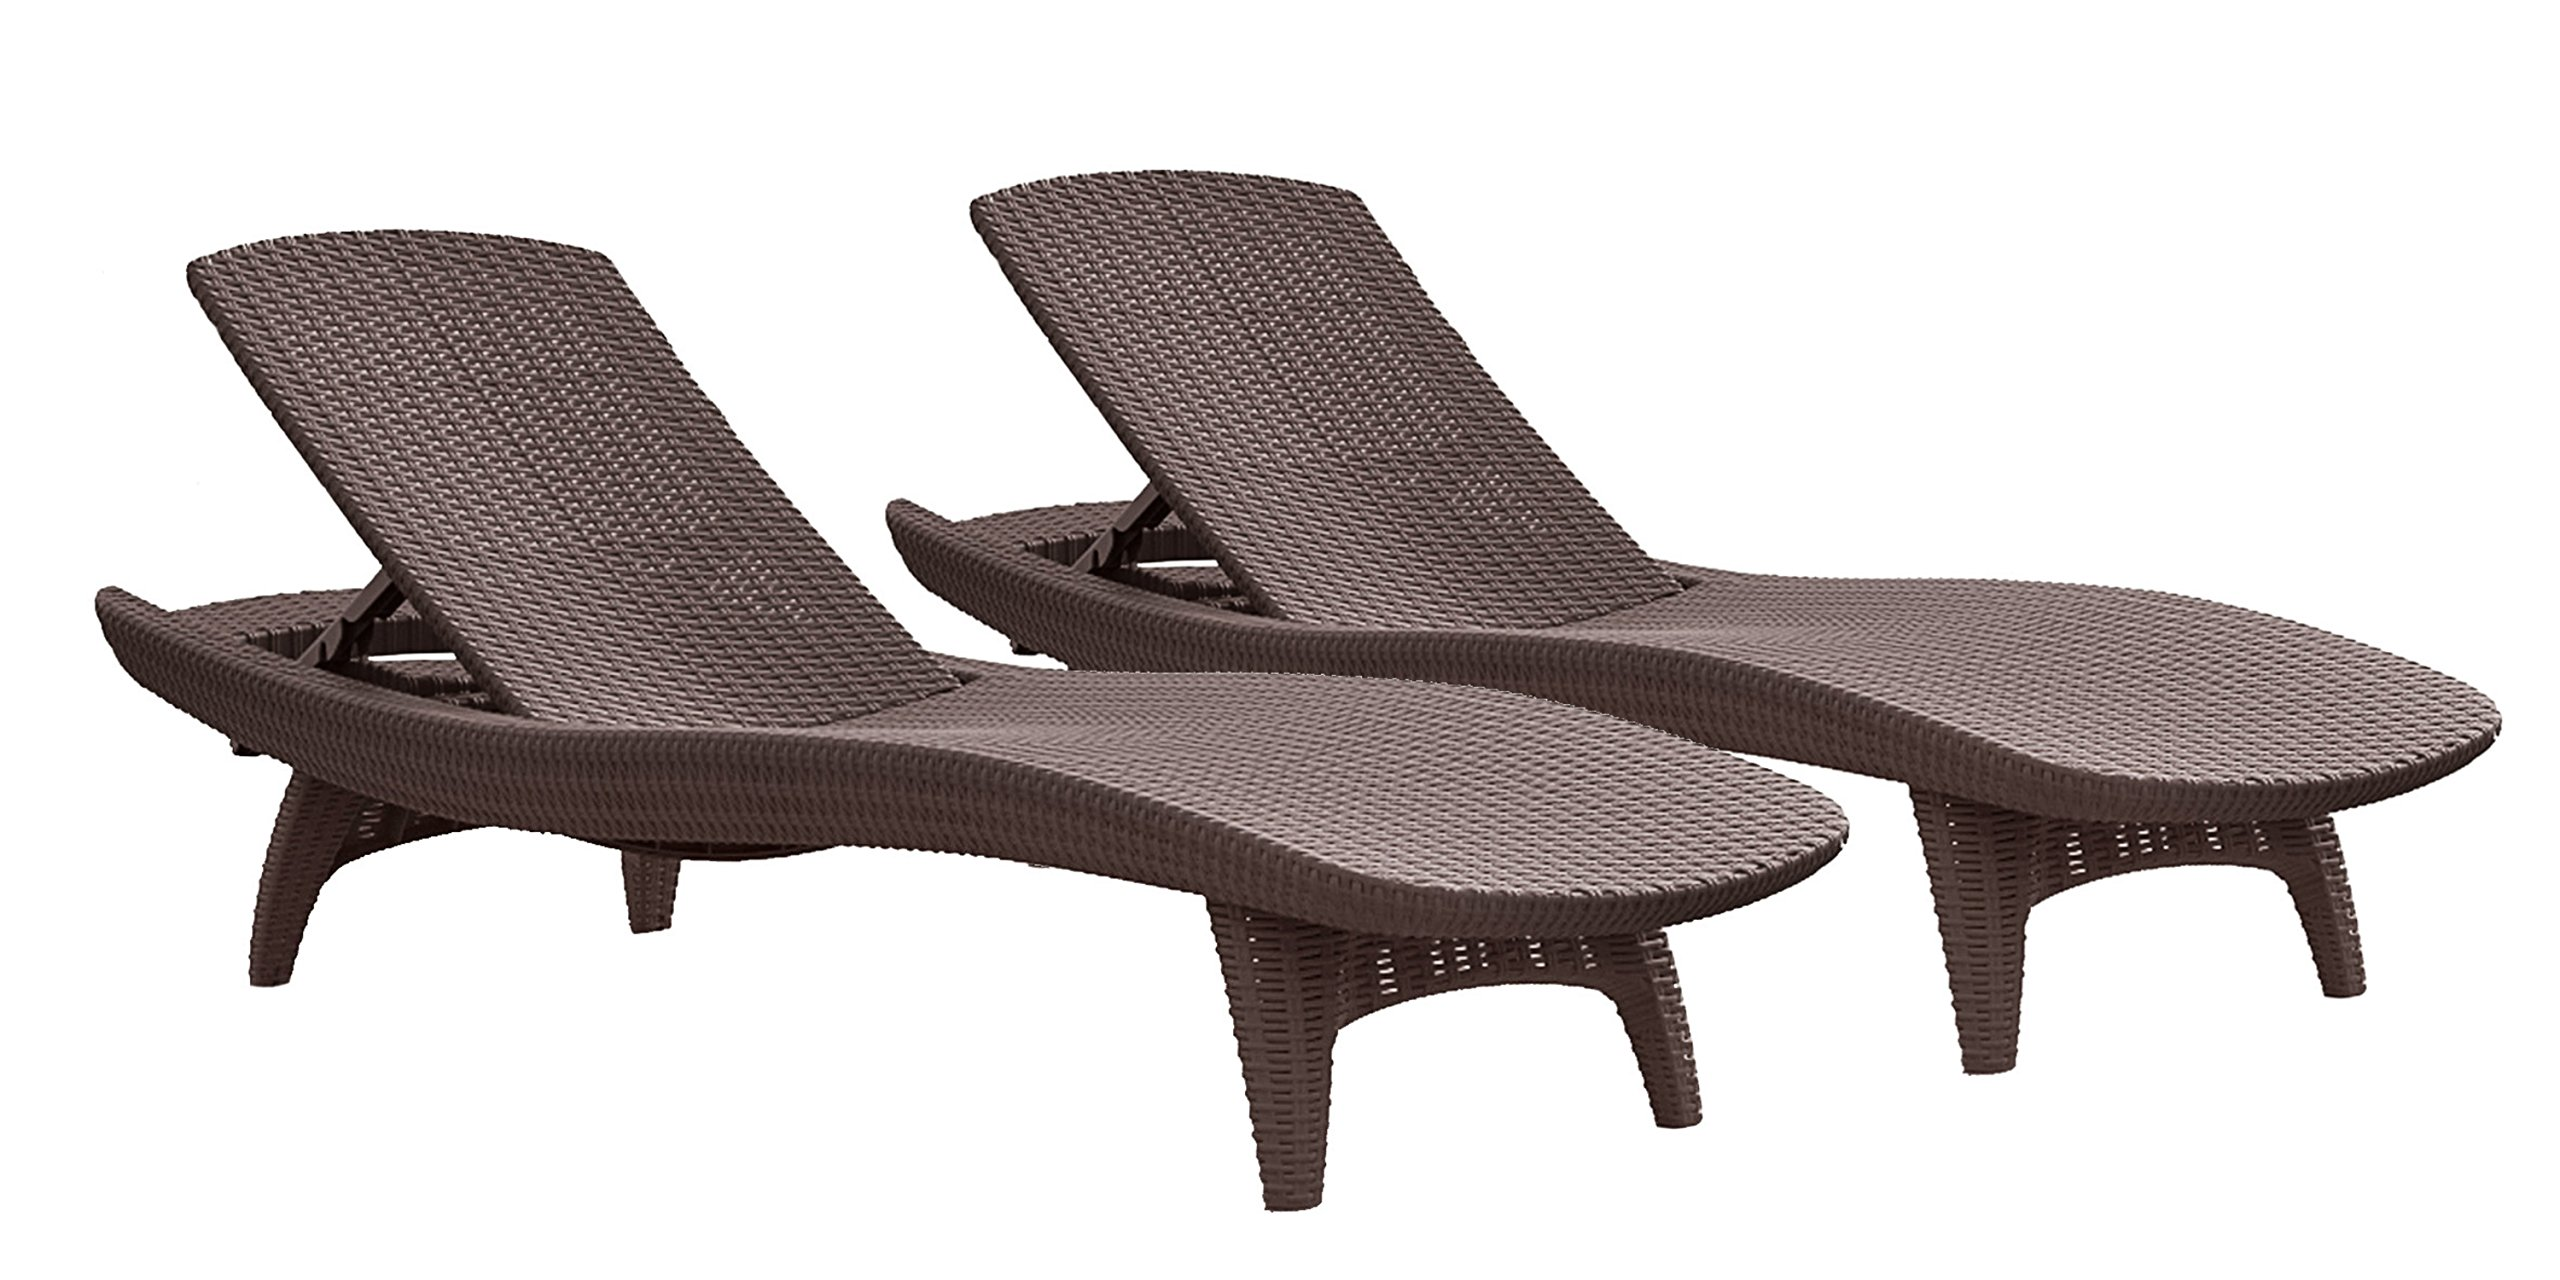 Keter Pacific 2-Pack All-weather Adjustable Outdoor Patio Chaise Lounge Furniture, Brown by Keter